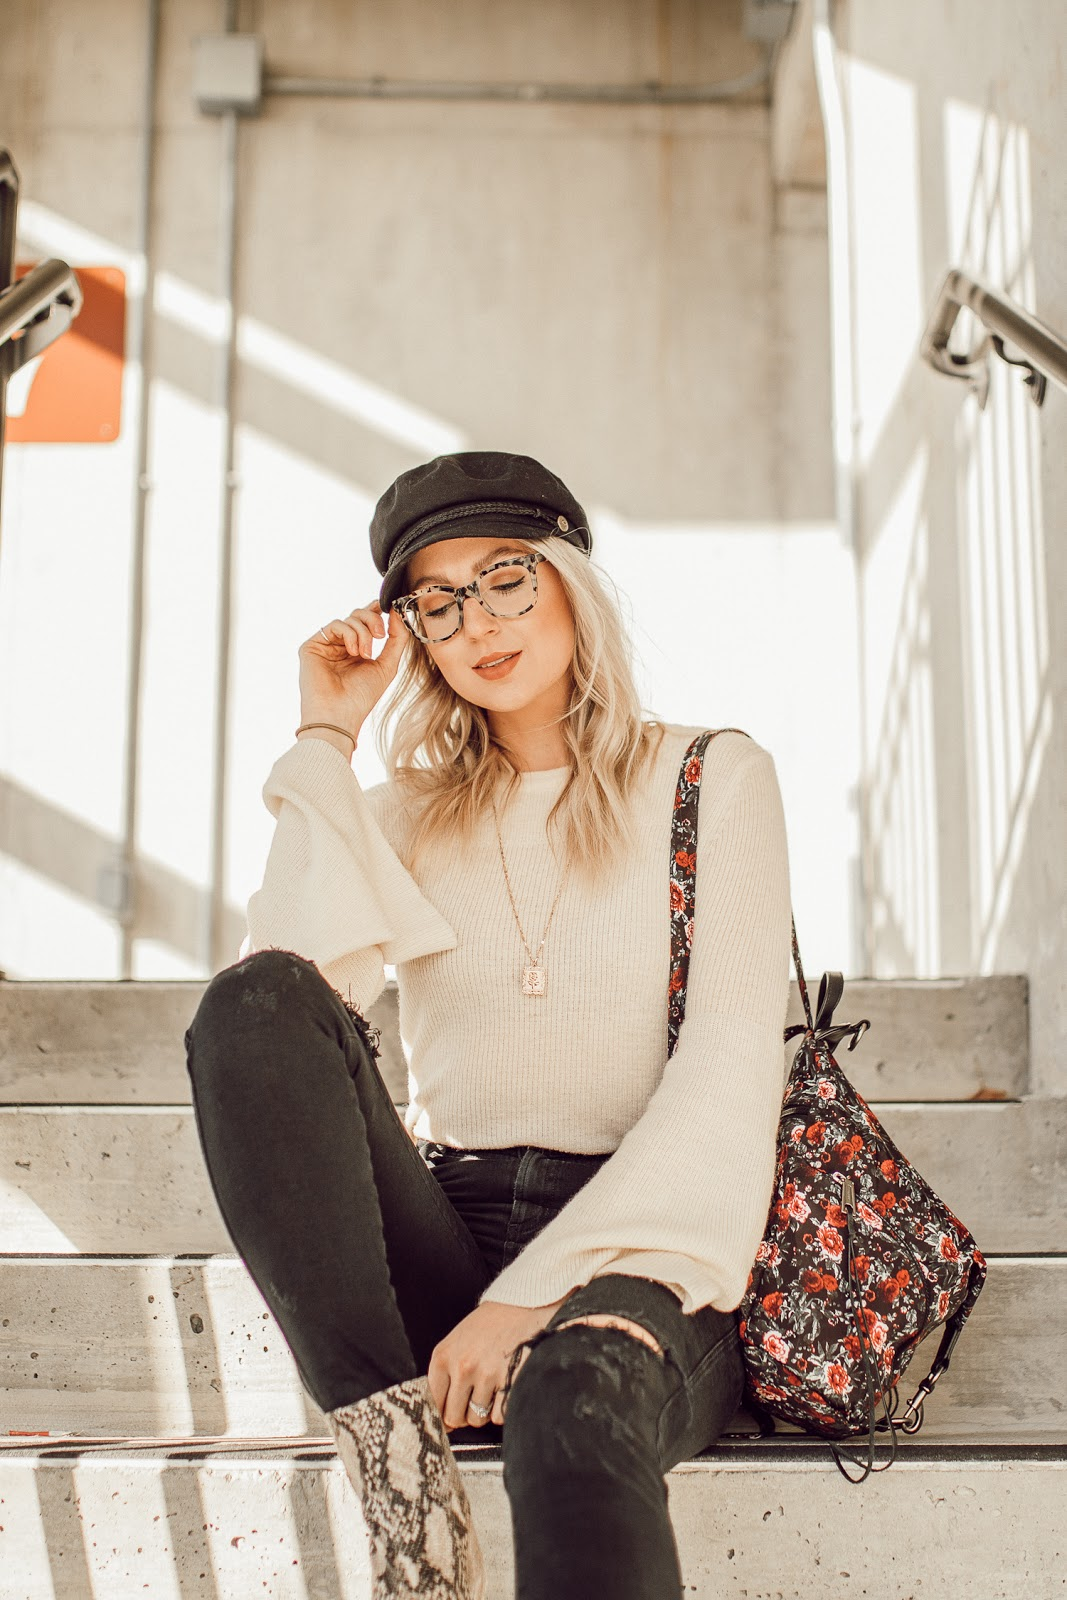 Bonlook Jack & Norma frames / fall outfit with lots of accessories